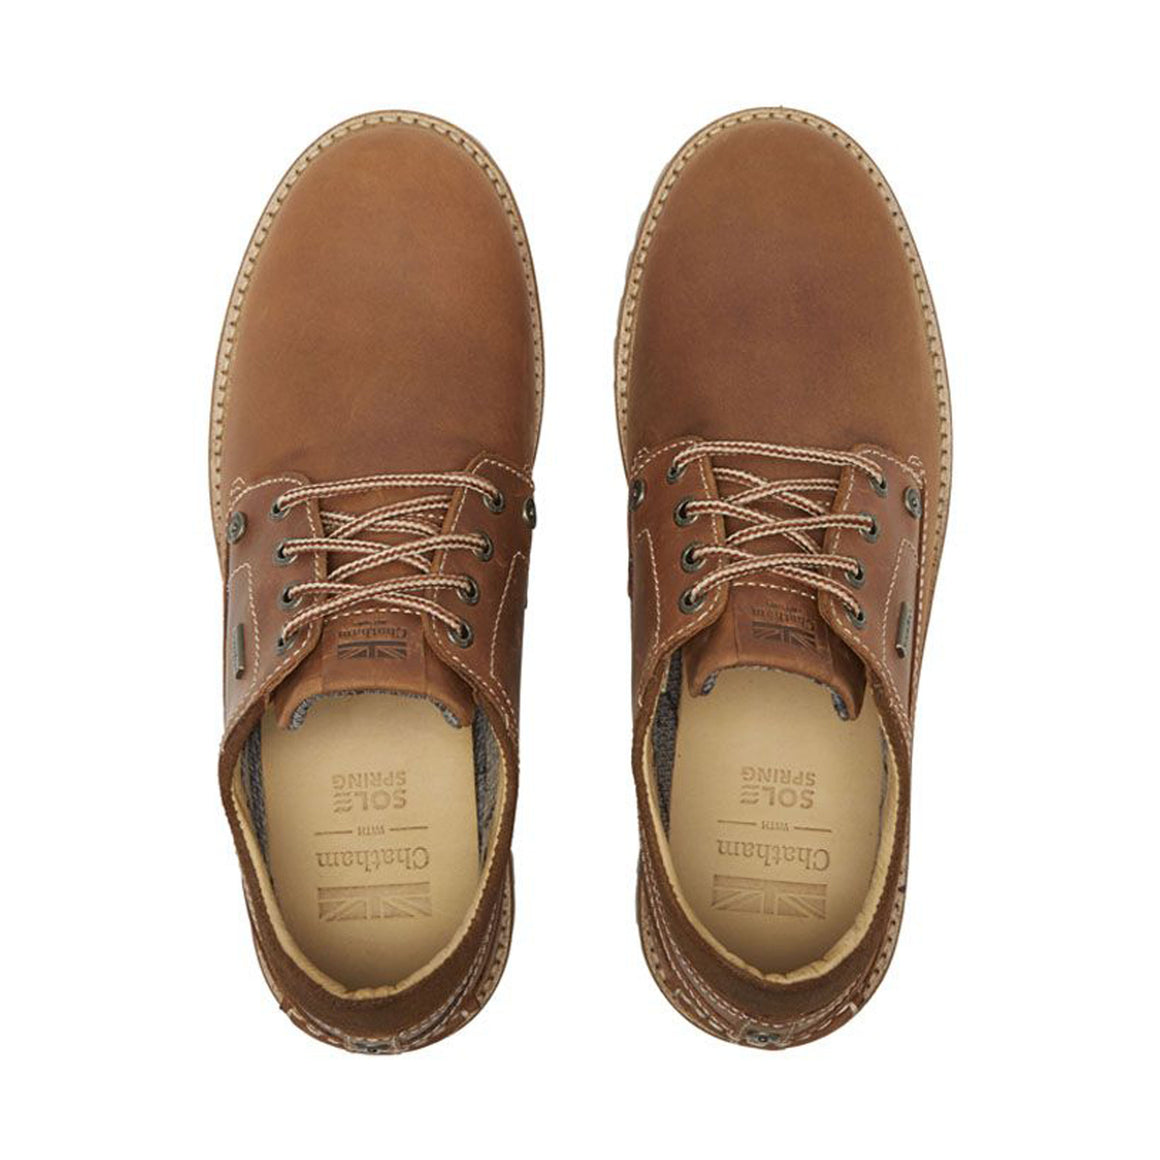 Raby Waterproof Derby Shoe for Men in Tan